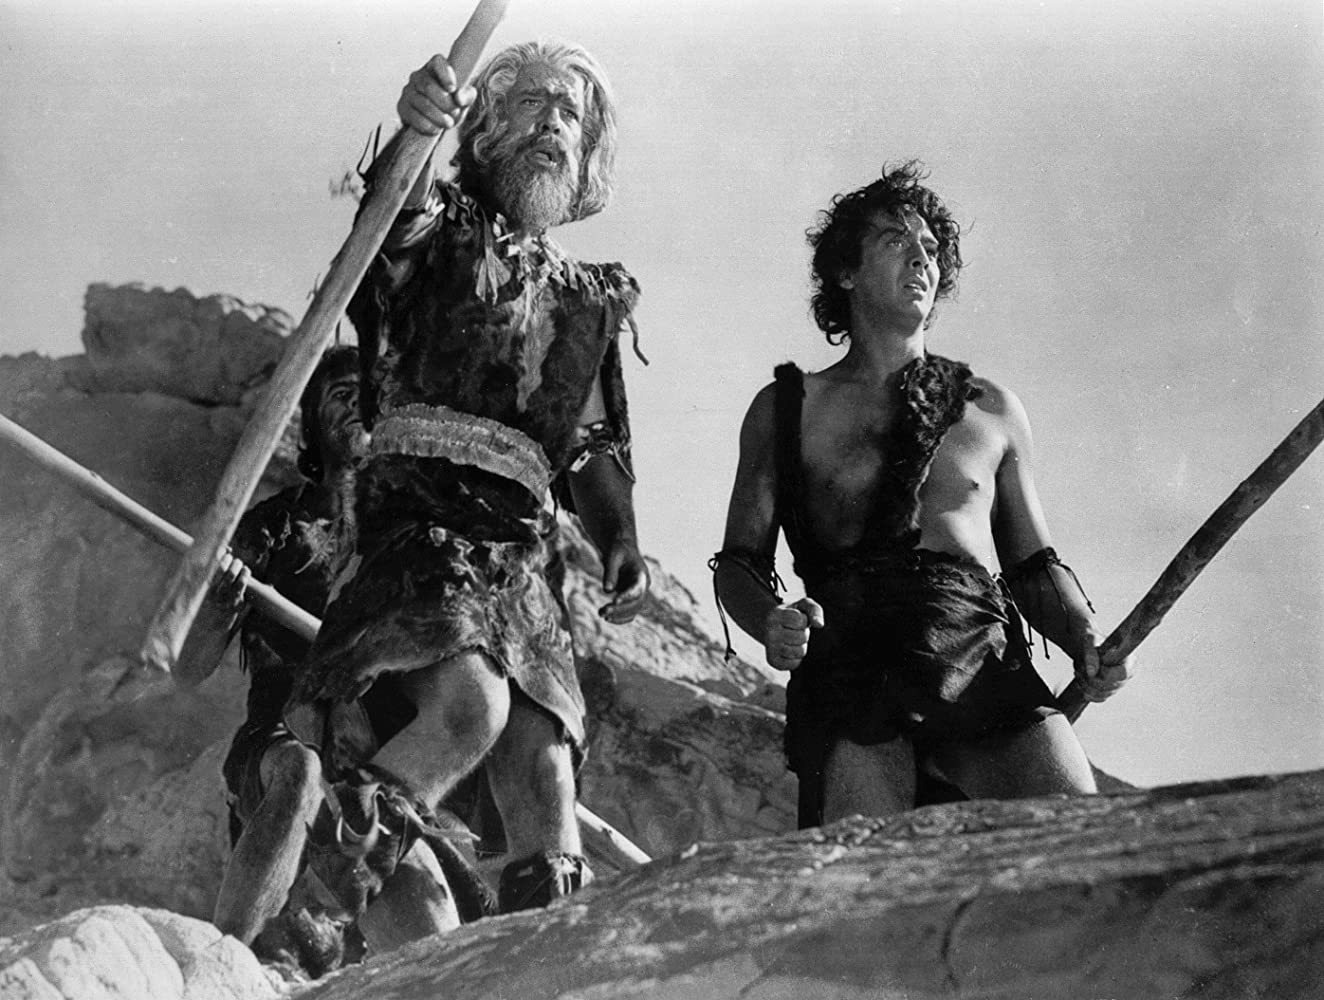 Lon Chaney Jr. and Victor Mature in One Million B.C. (1940)